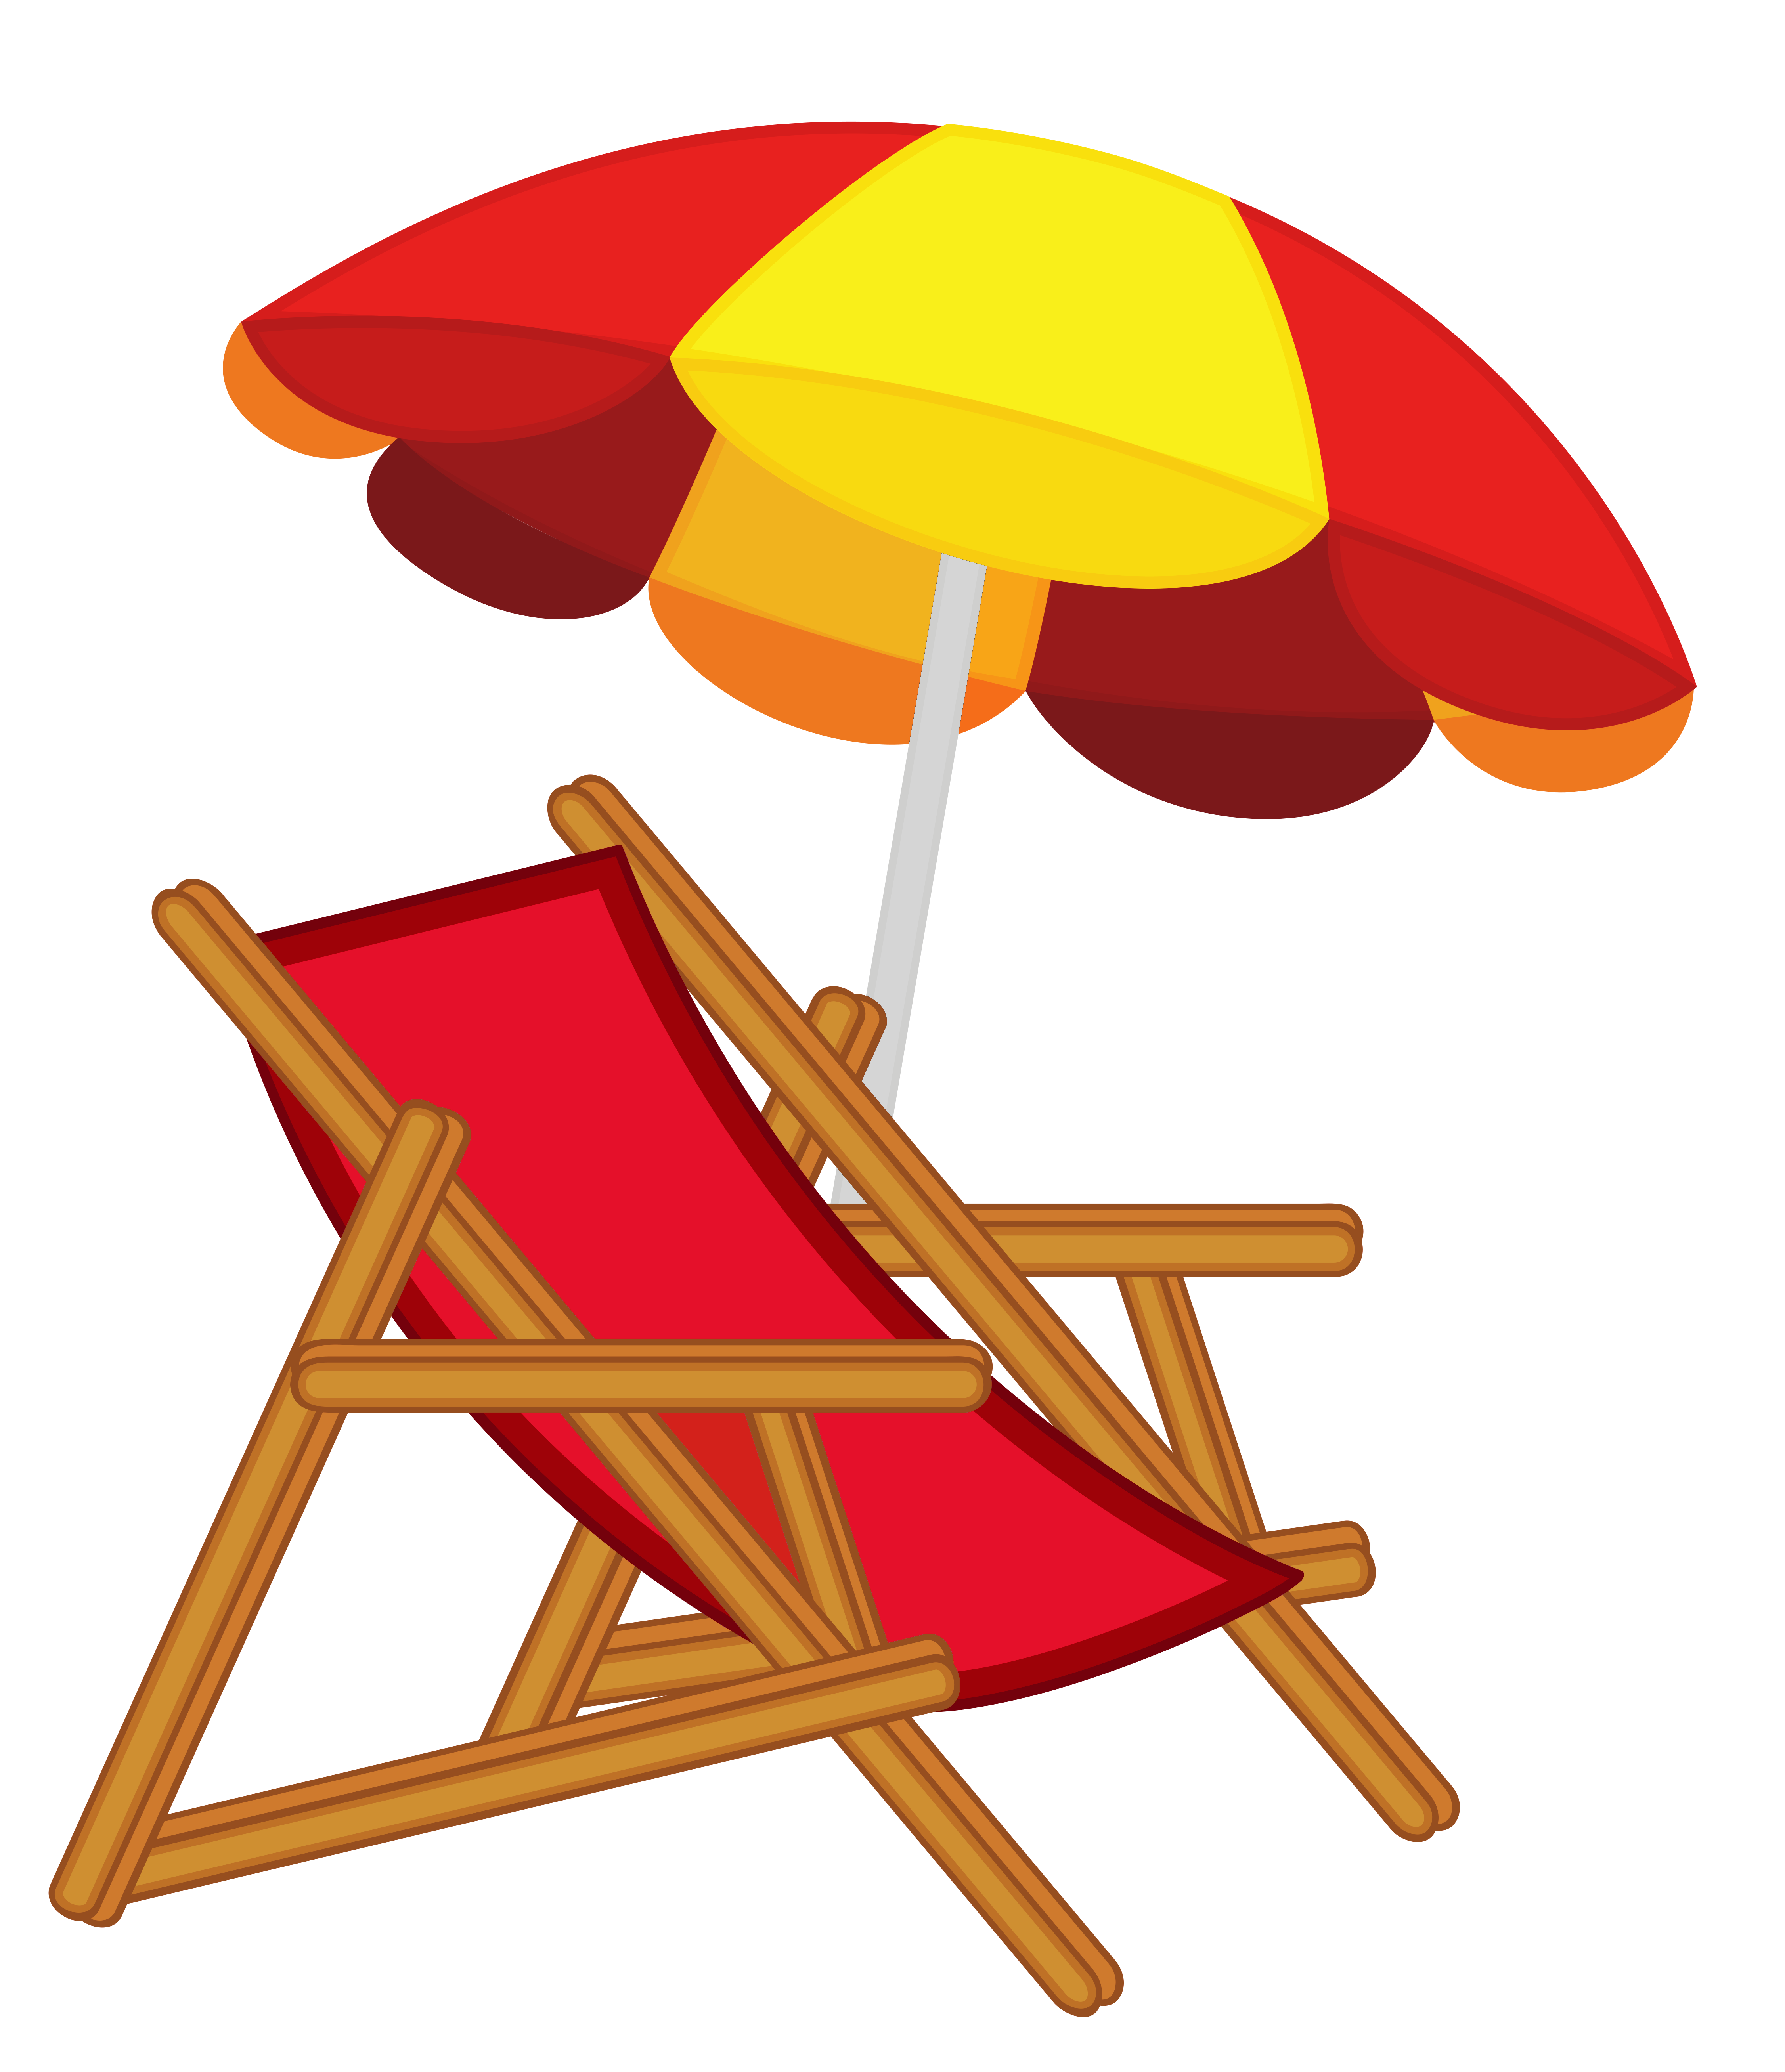 Free Beach Chair Cliparts, Download Free Clip Art, Free Clip.